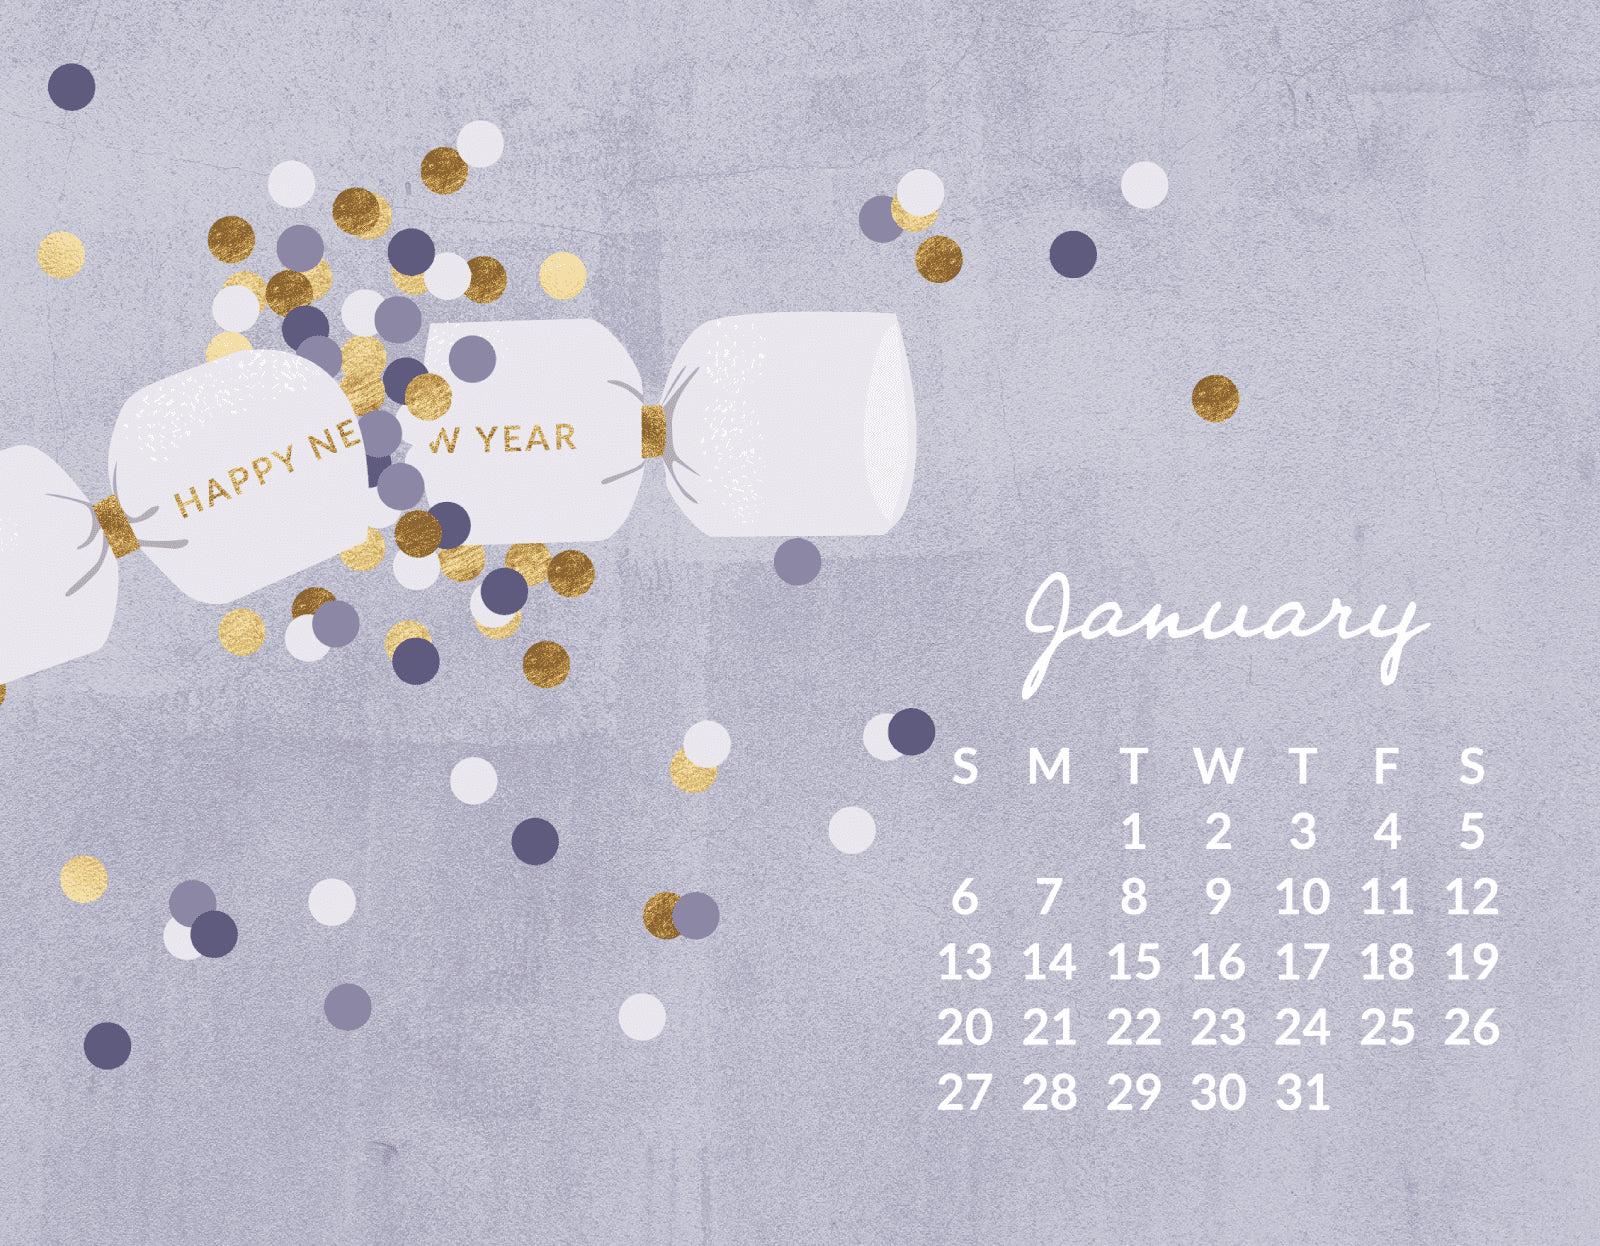 January 2019 Calendar Desktop Free January 2019 Calendar Wallpaper